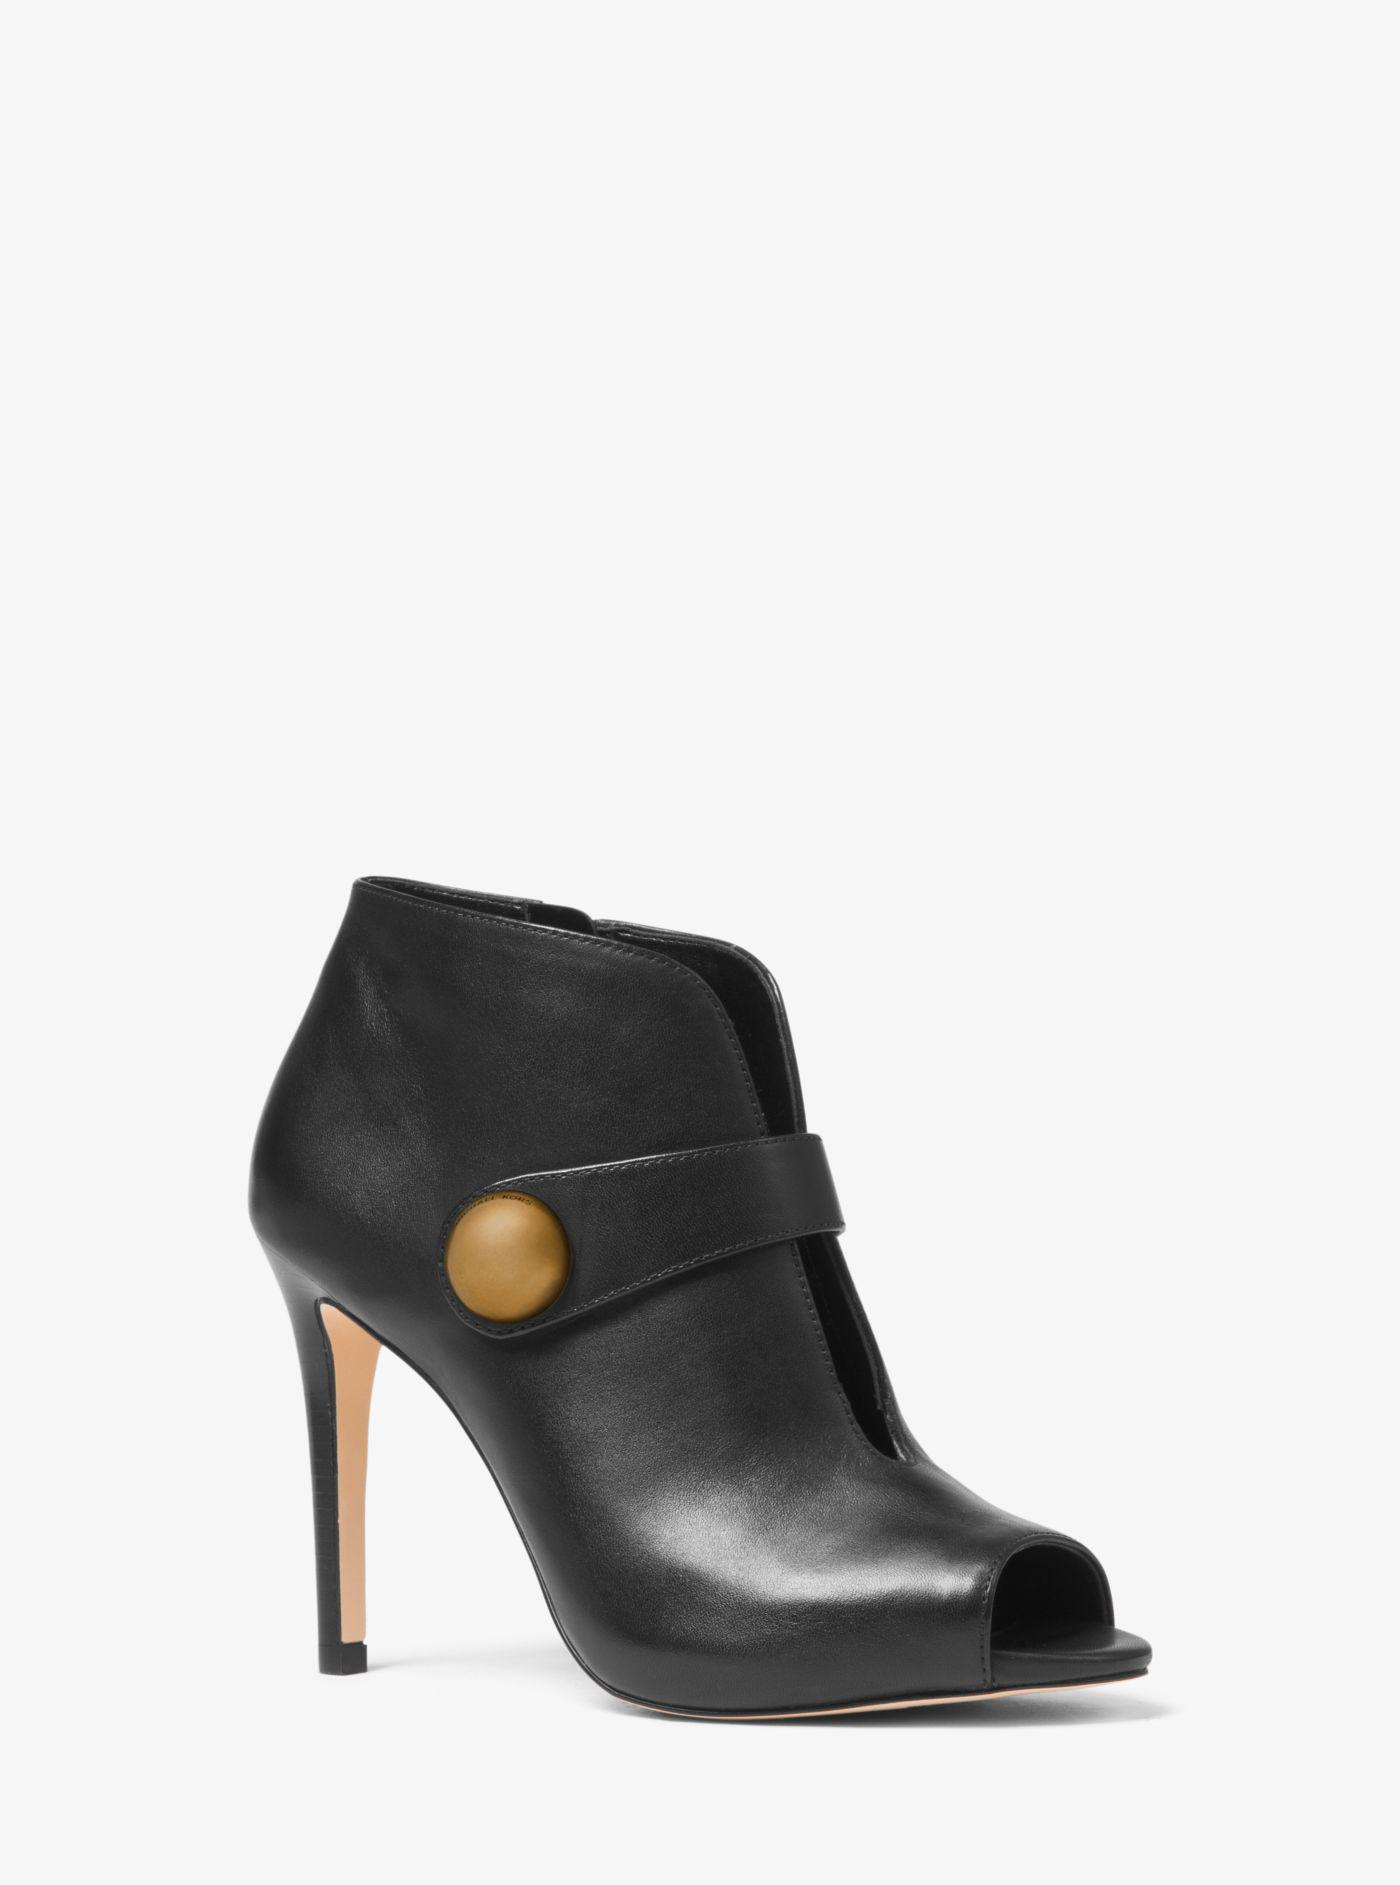 cf7420d9eef50 Michael Kors Agnes Leather Bootie in Black - Save 71% - Lyst